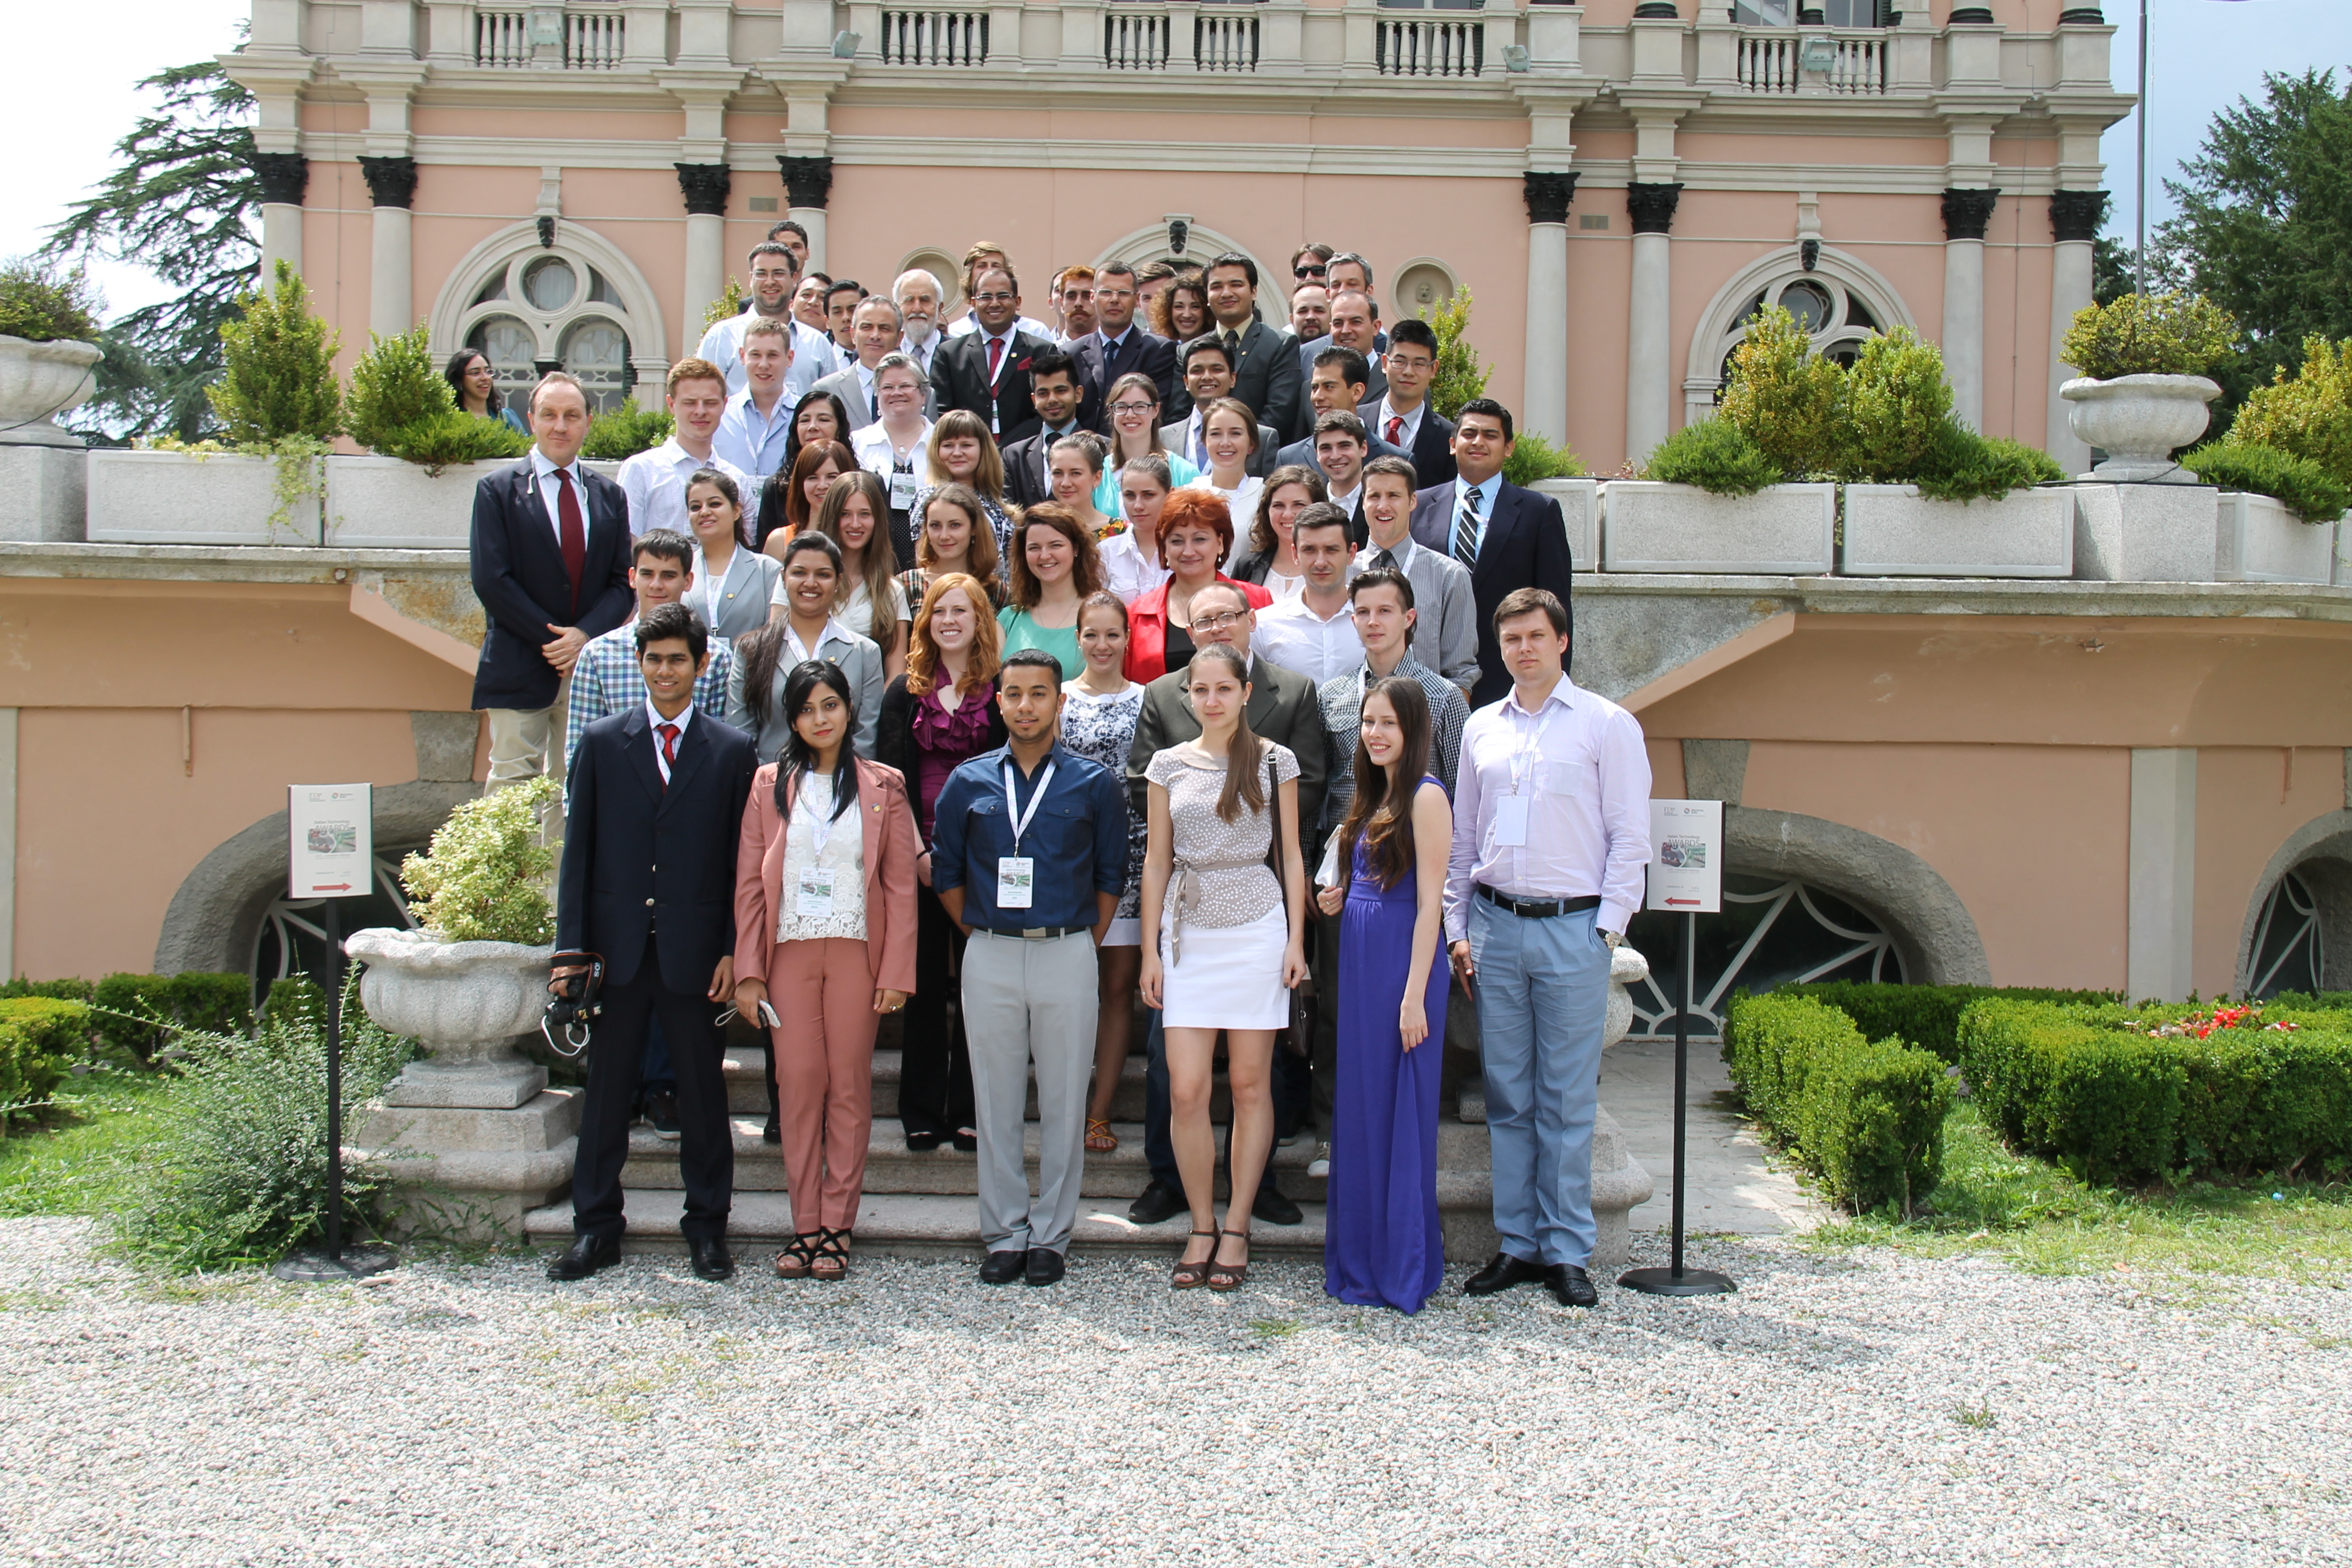 2014 Italian Technology Award Student and Faculty Award Winners